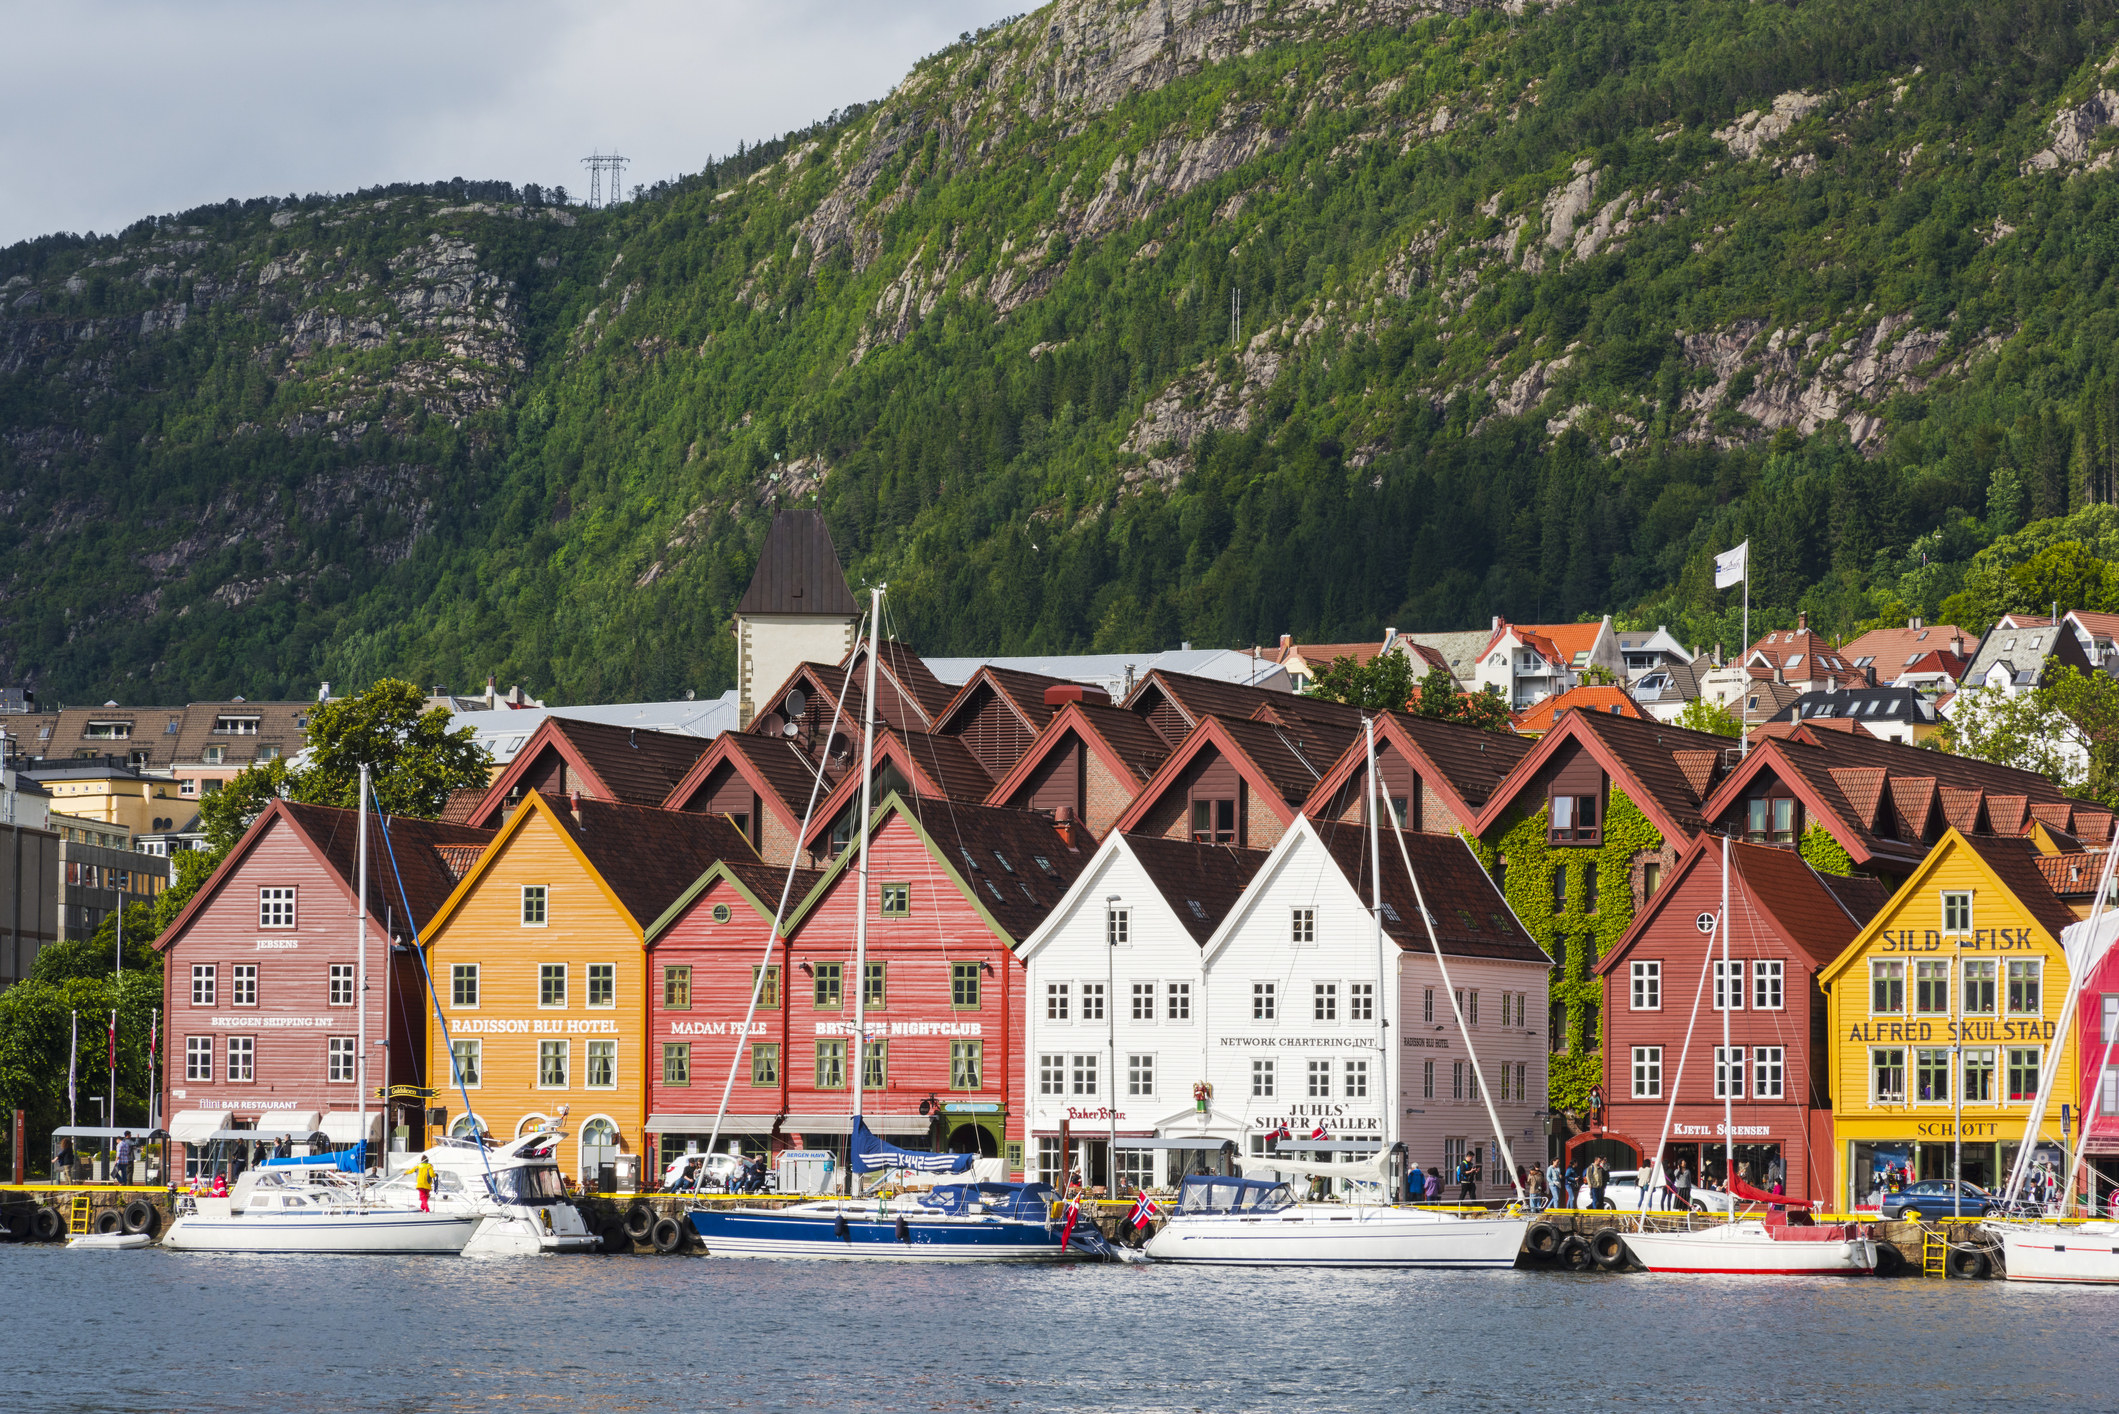 A harbor with colorful houses in Bergen, Norway.